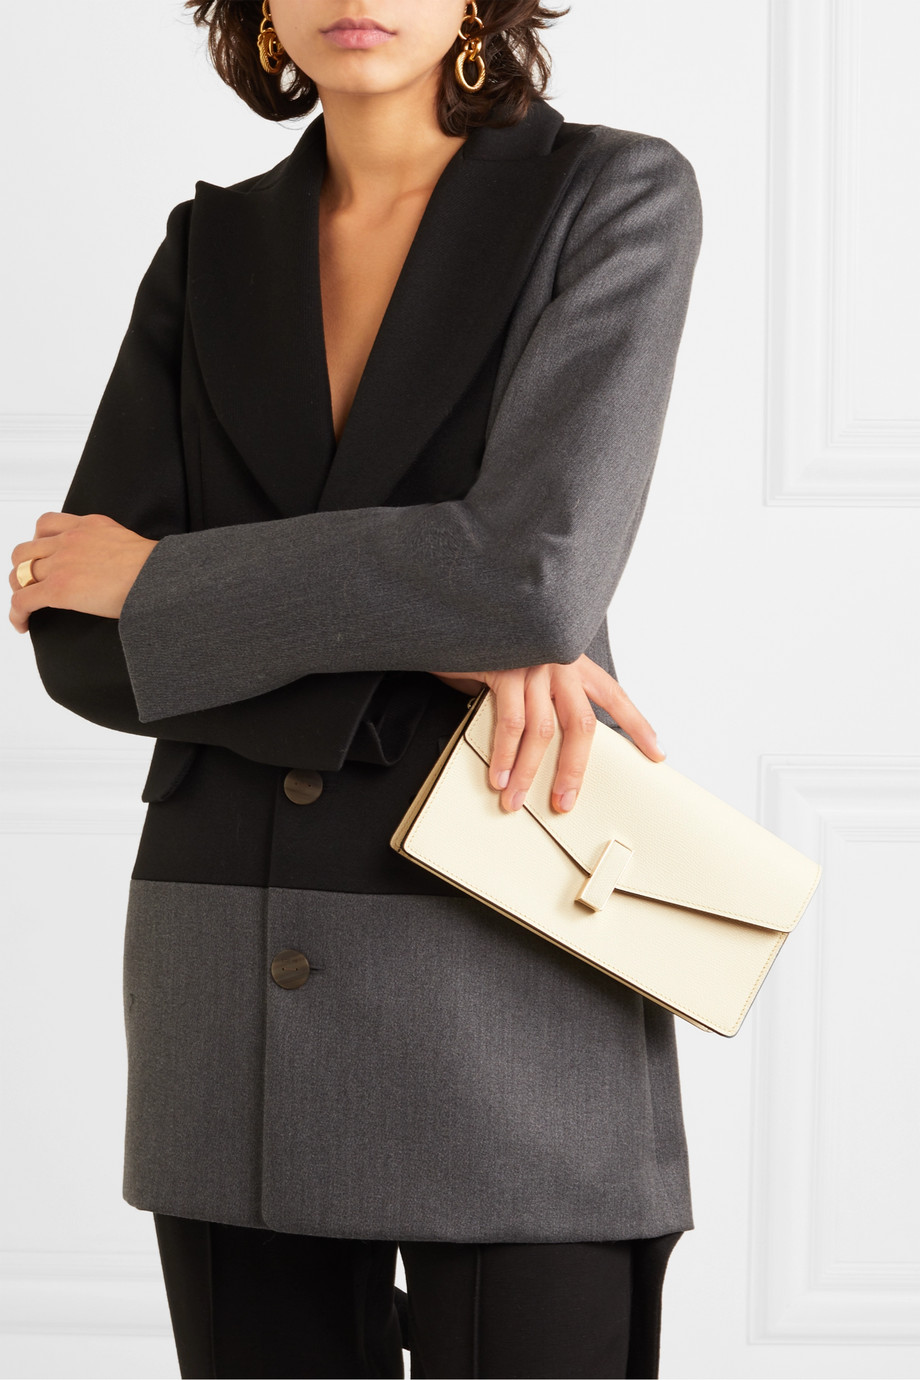 Valextra Iside textured-leather clutch